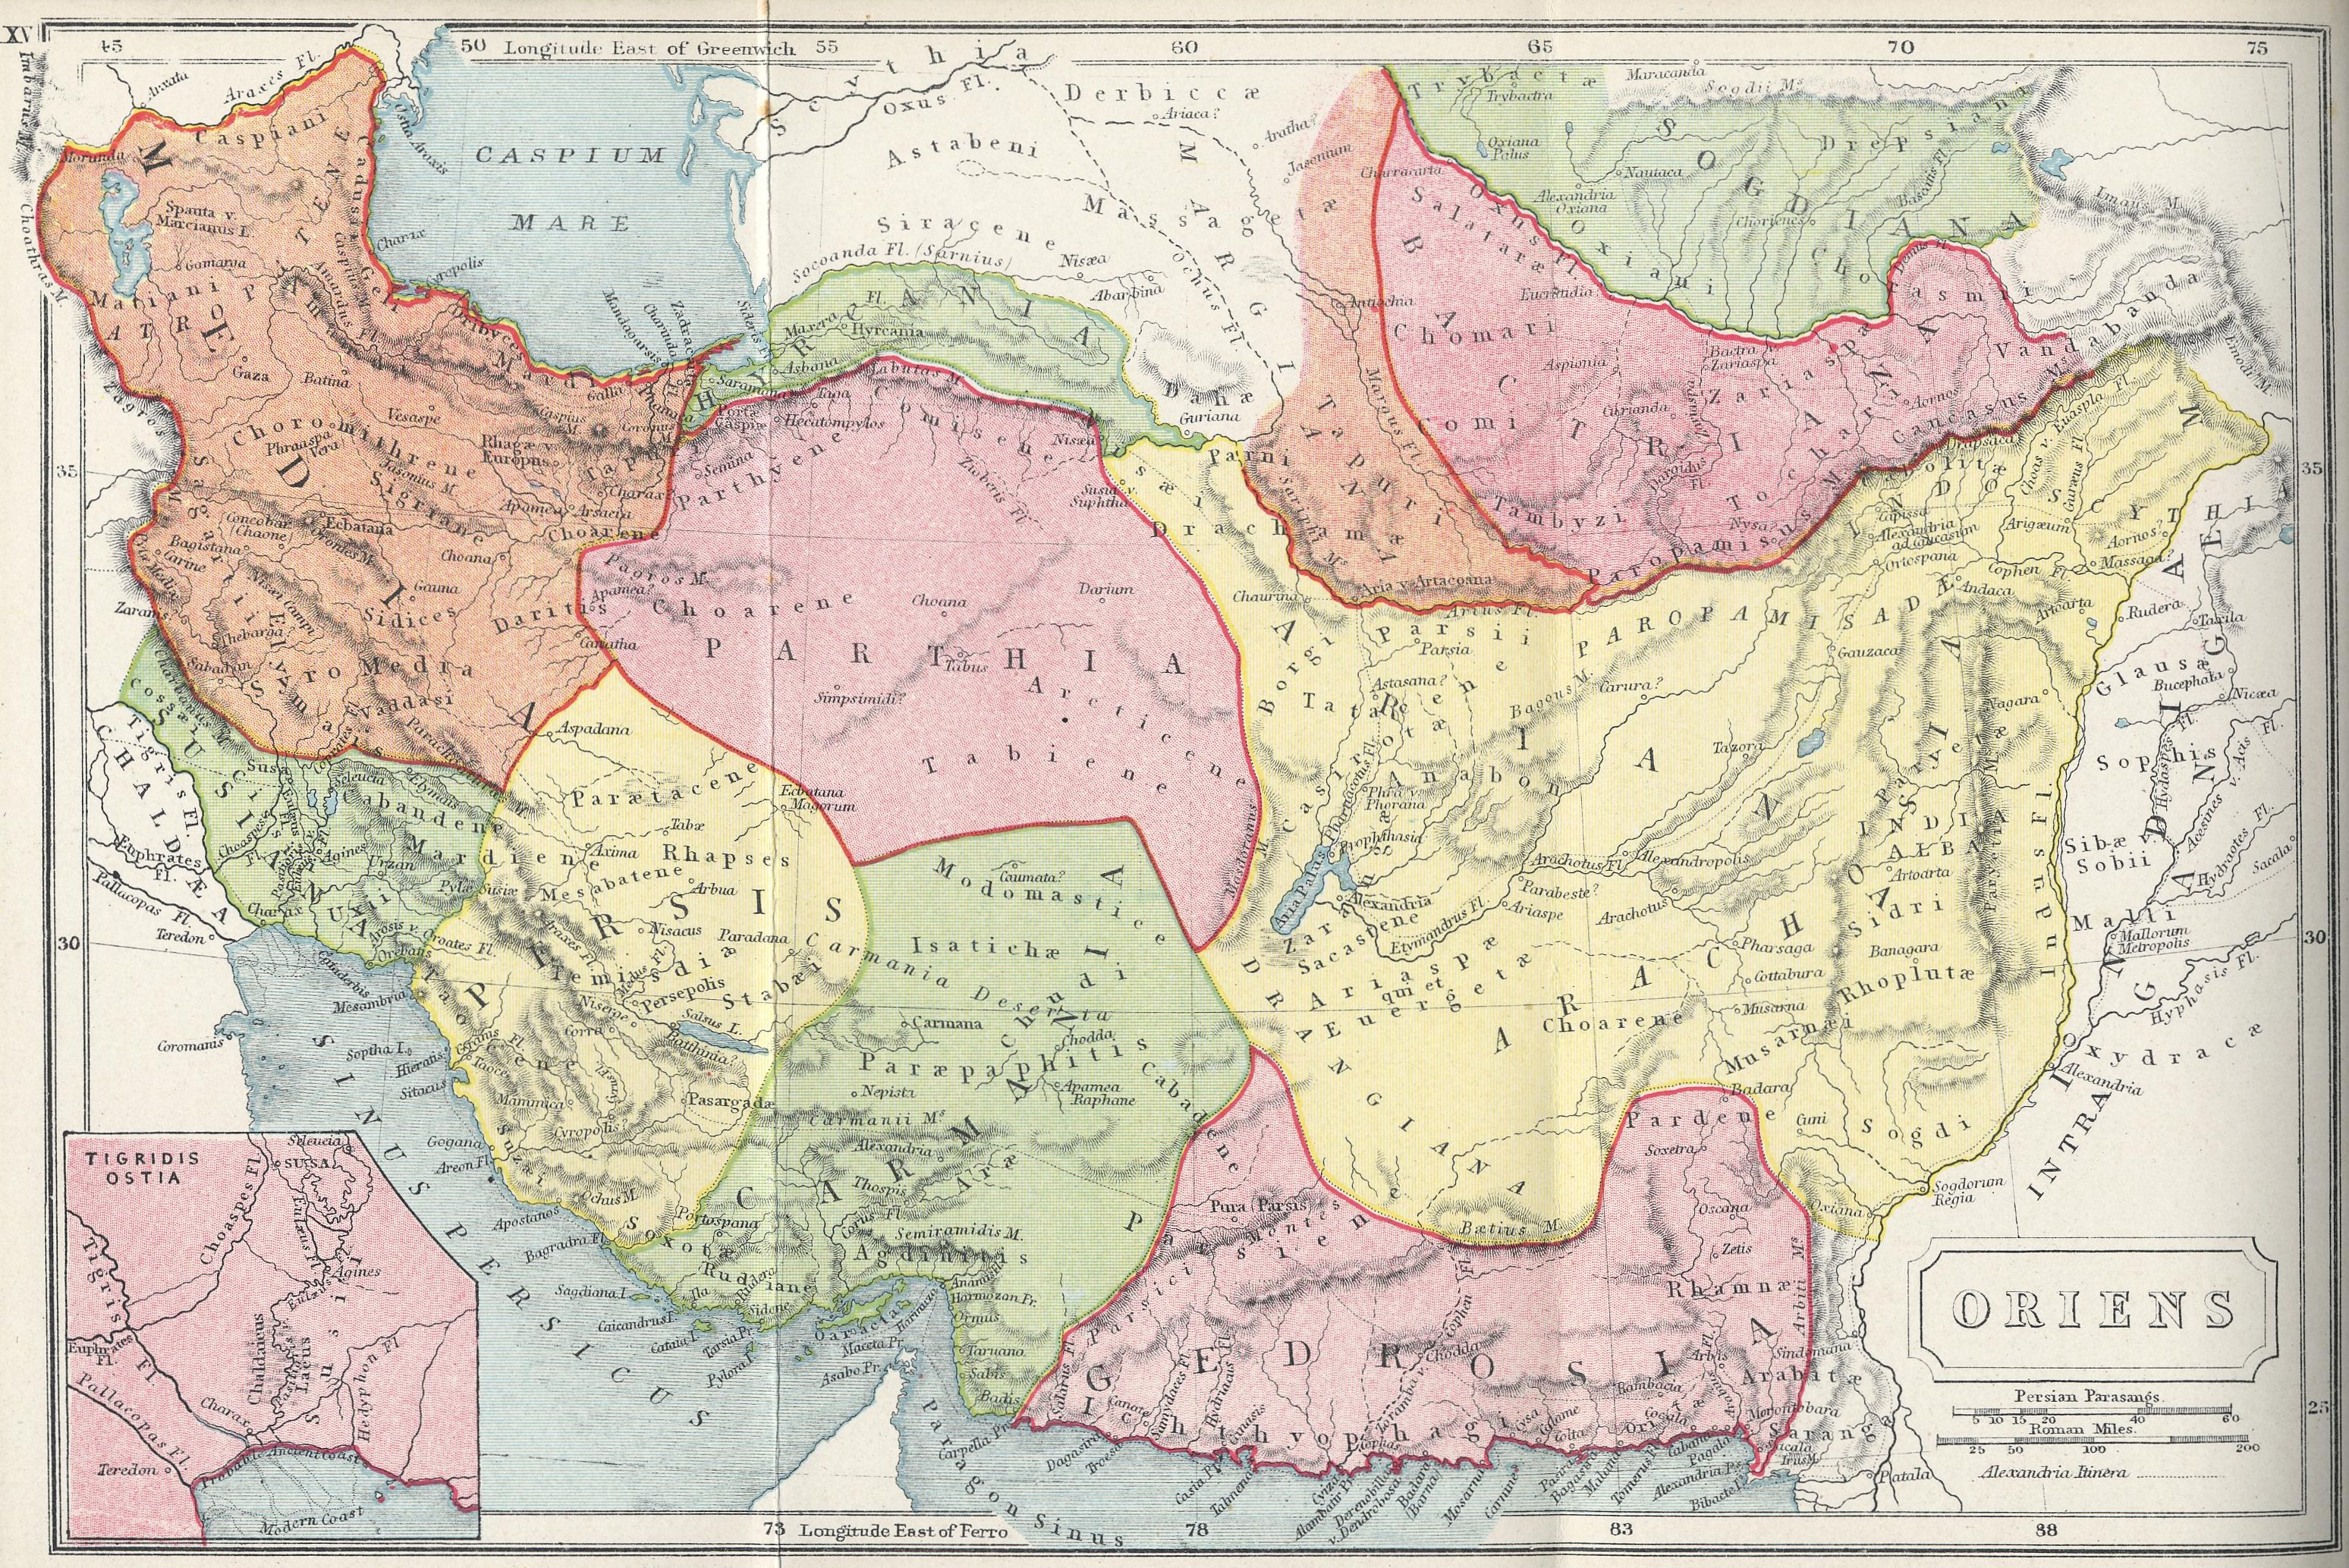 Map of Eastern Regions70 BC - AD 180